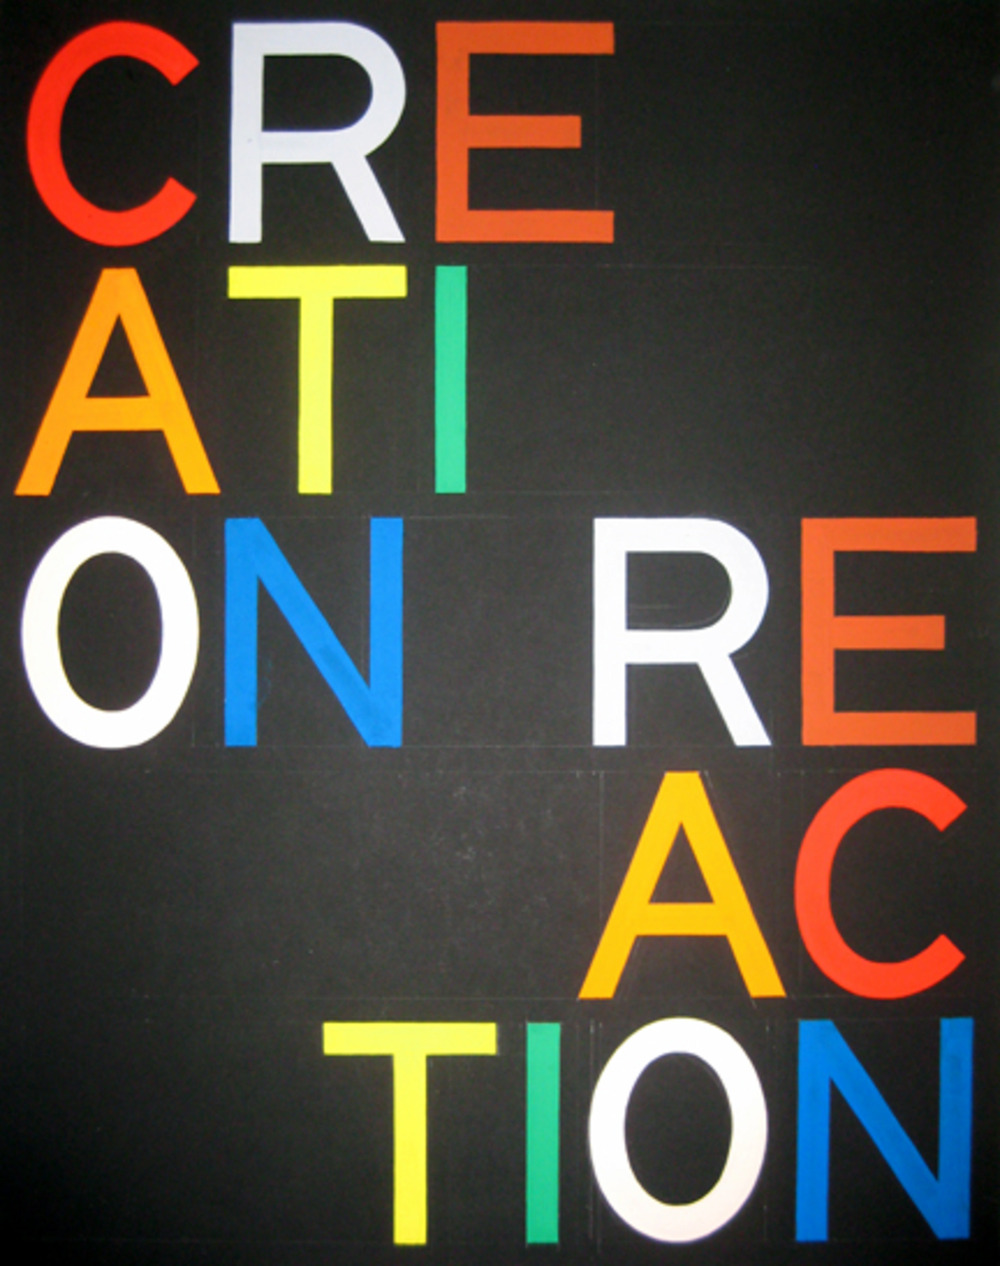 Tauba auerbach  creation reaction  2008